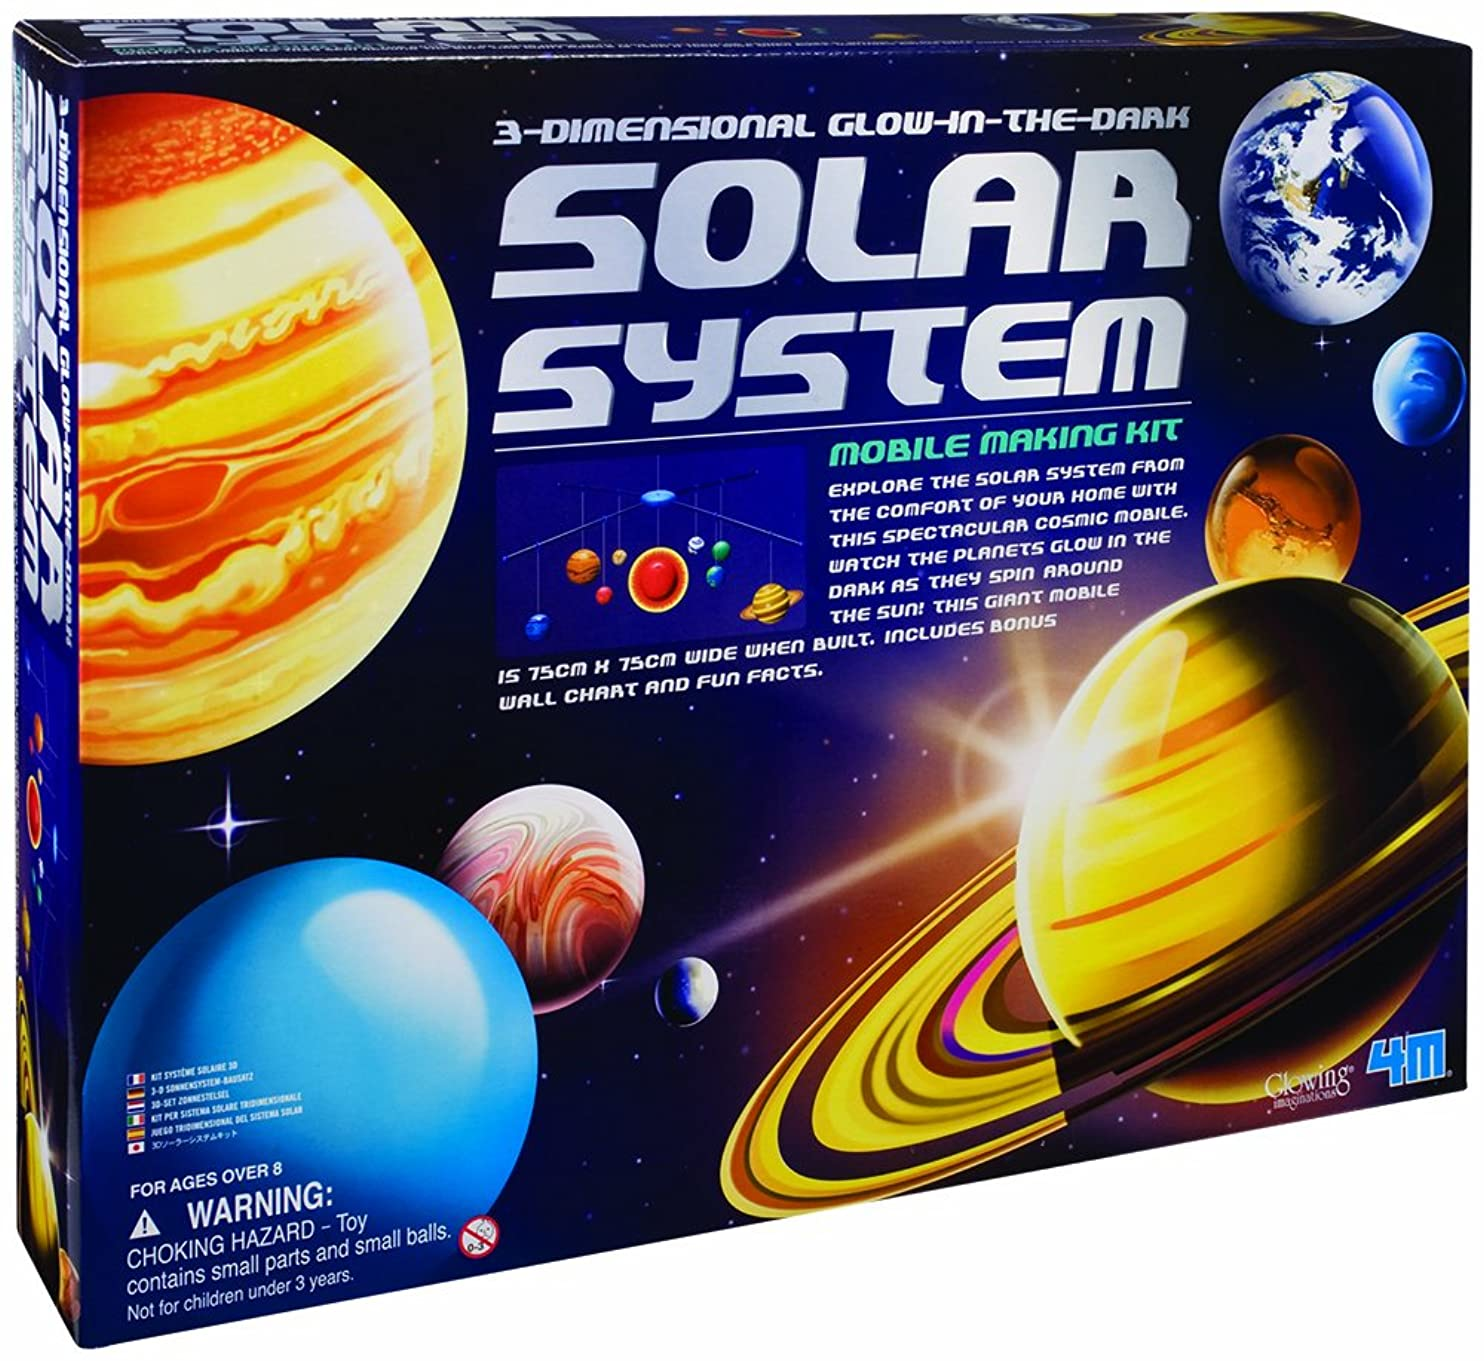 4M 3-Dimensional Glow-In-The-Dark Solar System Mobile Making Kit zbanzfuvoyp28